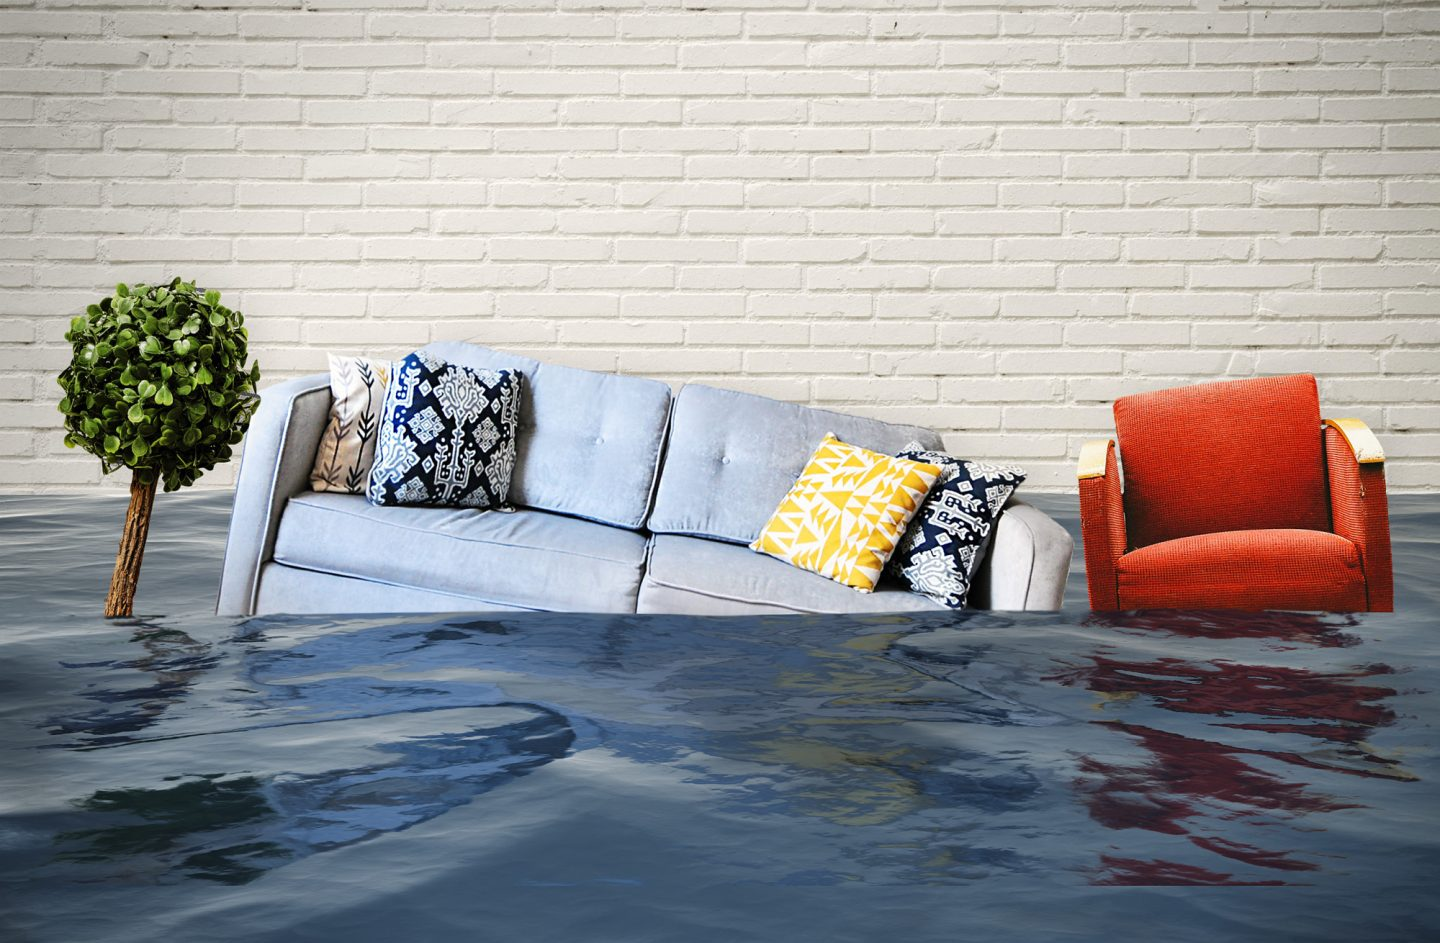 Step-By-Step Water Damage Remediation Guide to Be Followed